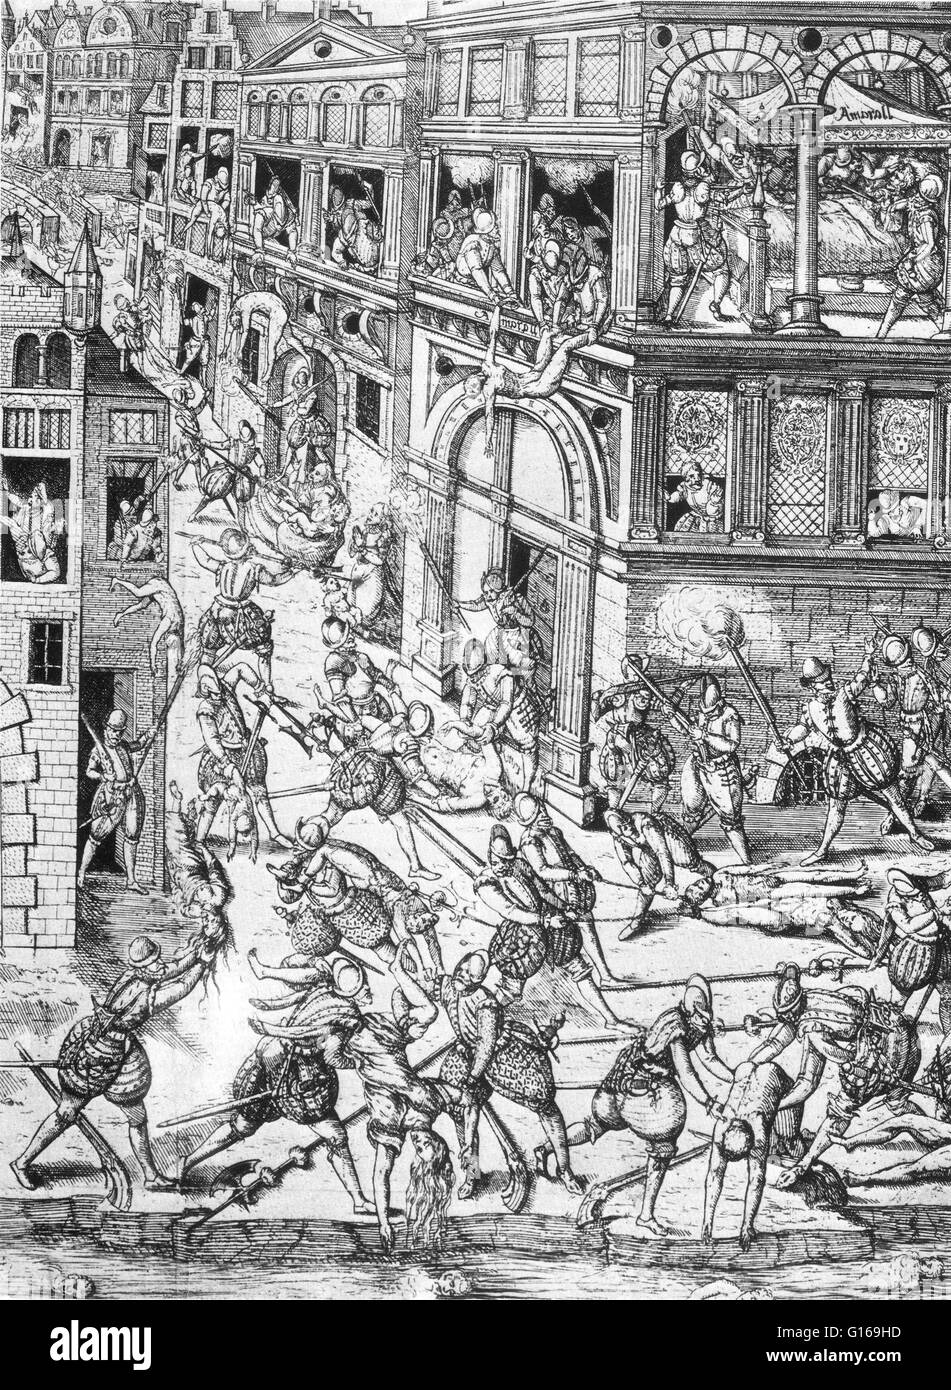 The St. Bartholomew's Day massacre in 1572 was a targeted group of assassinations, followed by a wave of Roman Catholic mob violence, both directed against the Huguenots, during the French Wars of Religion. Traditionally believed to have been instigated b Stock Photo